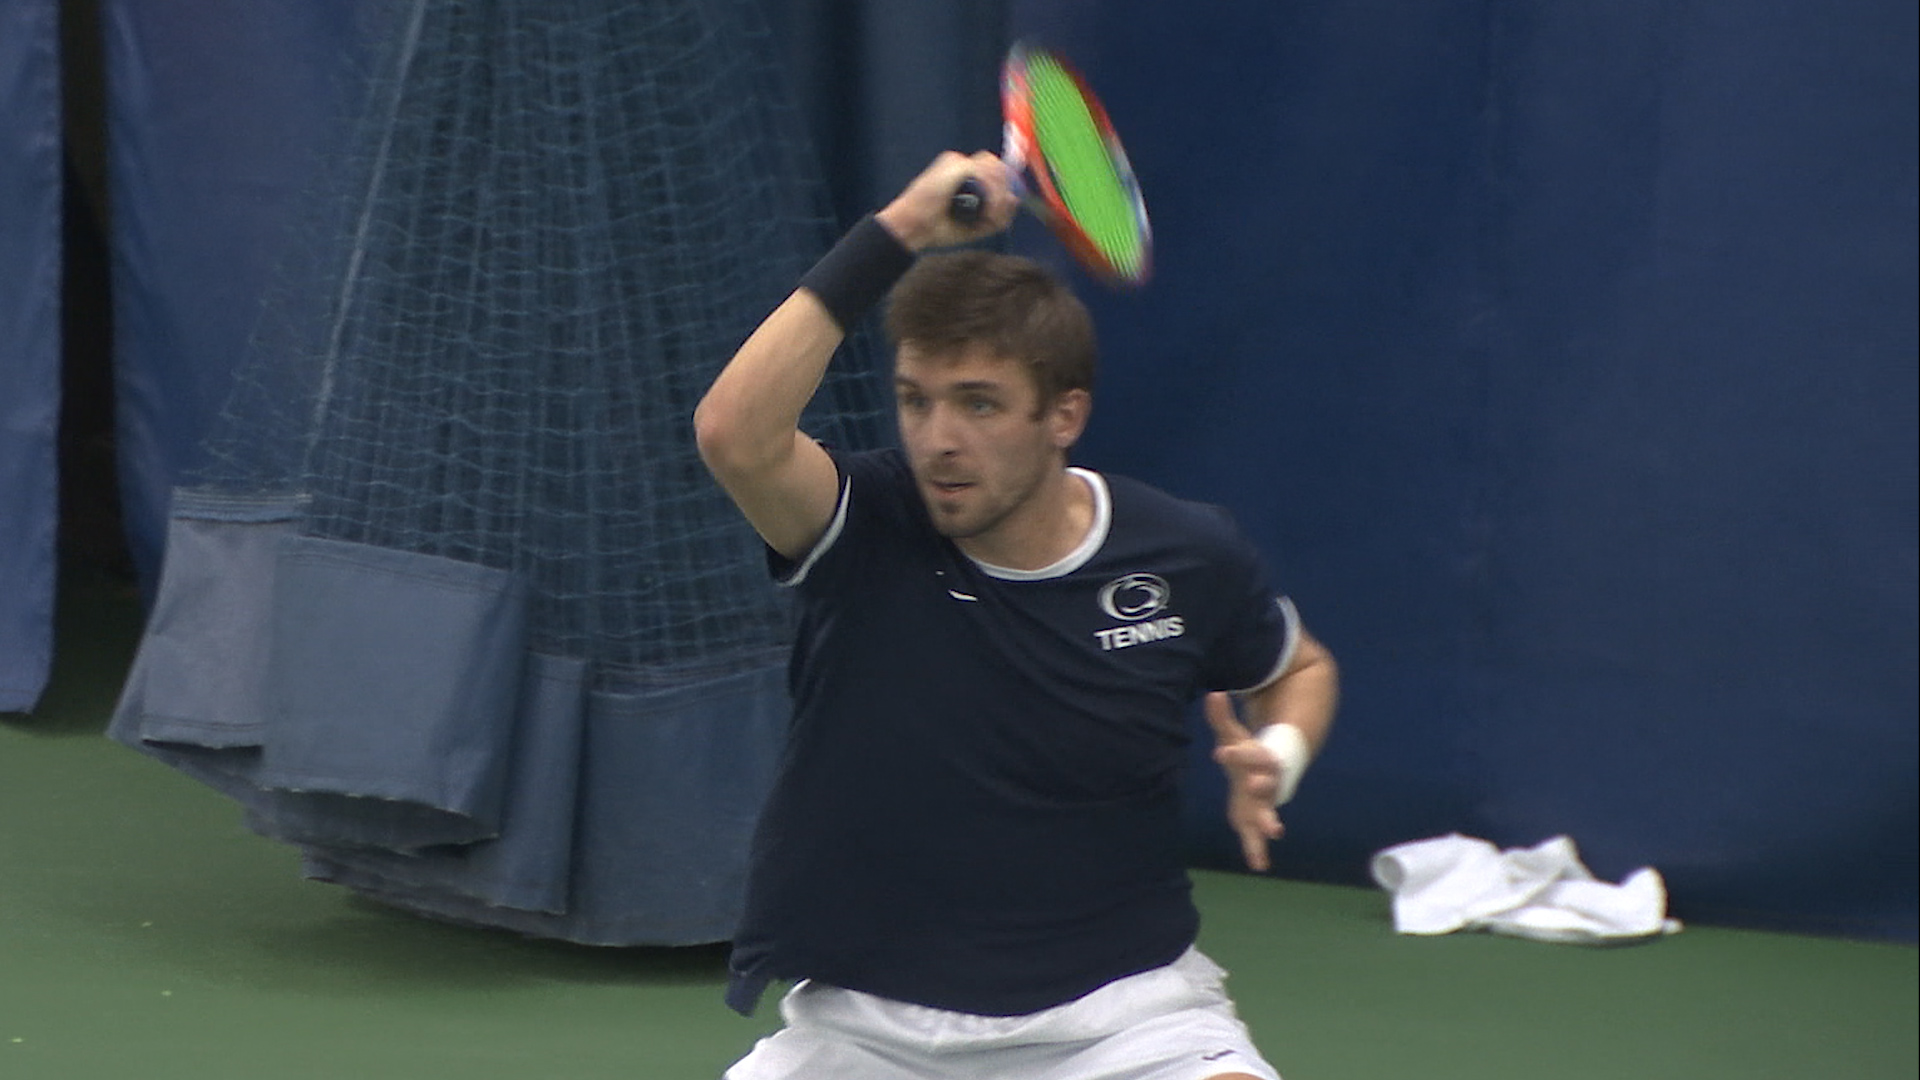 psu men's tennis_1549680810209.jpg.jpg